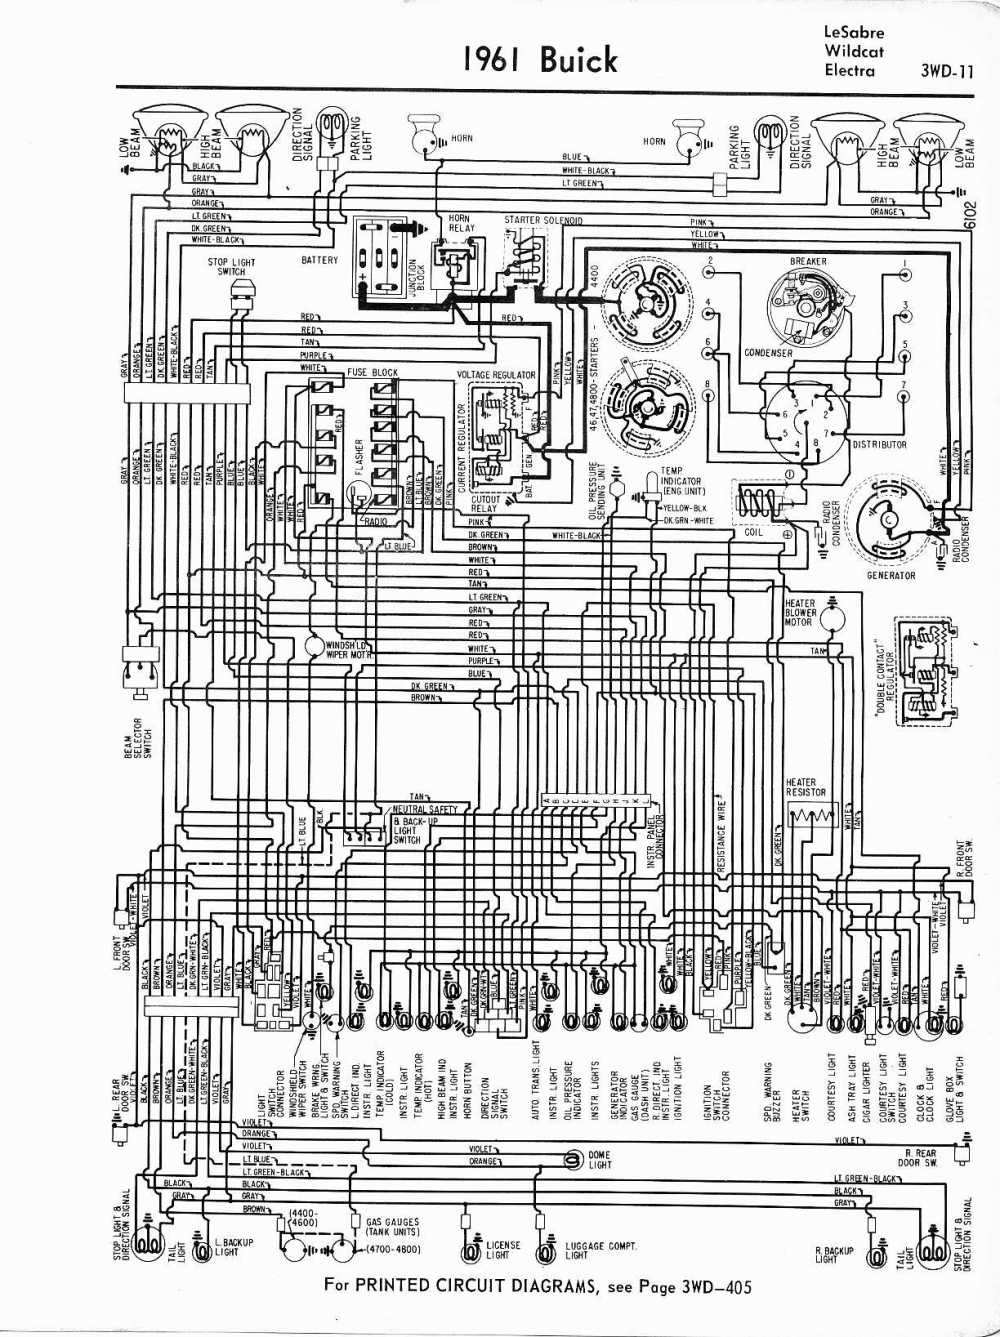 medium resolution of 1996 buick lesabre wiring diagram schematic wiring diagrams buick color codes 1960 buick lesabre wiring diagram